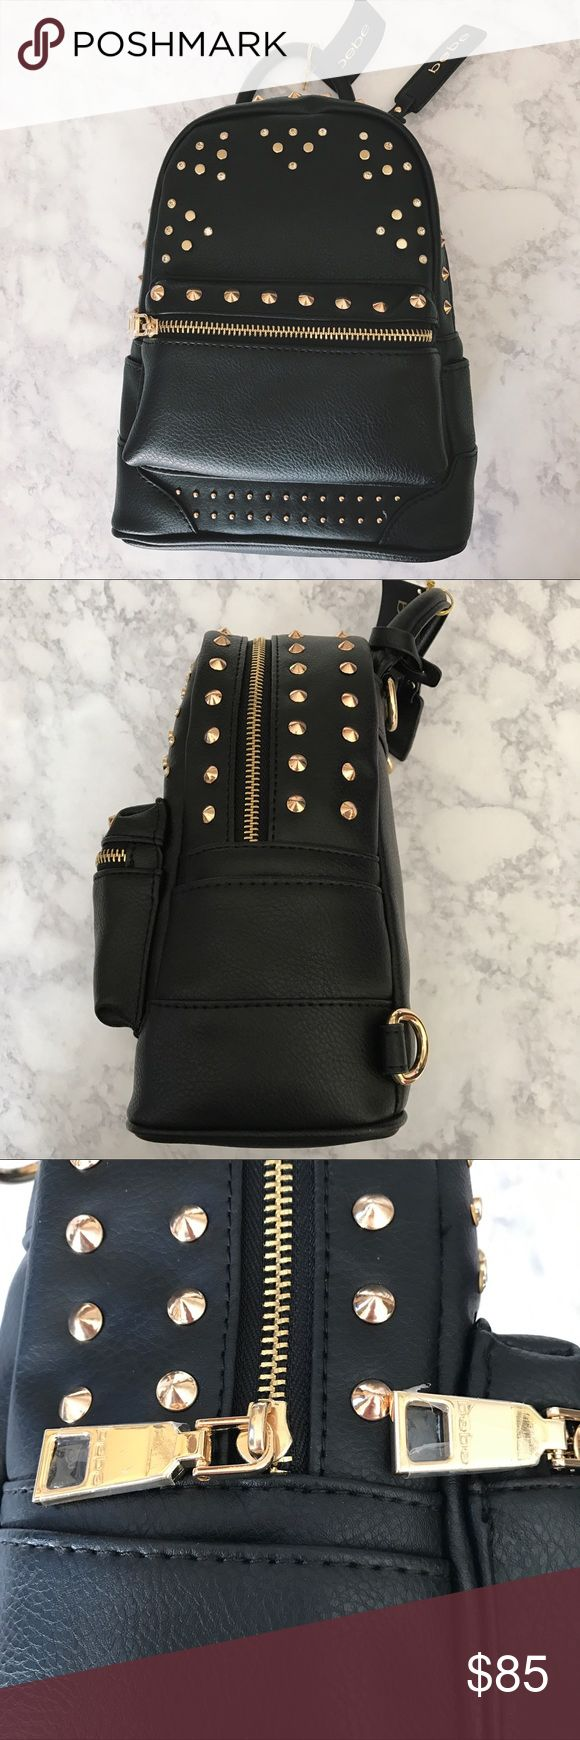 """Bebe Mini Studded Backpack Brand new. Never used. Decorated with studs. Straps haven't been attached yet- still wrapped. Zippers still have protective film. One zippered pocket on front. One small slip pocket on both left and right side. Main compartment has a large slip pocket inside. Measures approximately 10"""" in height, 7 & 1/2"""" in width, and 4"""" in depth. Comes from a smoke free and pet friendly home. bebe Bags Backpacks"""